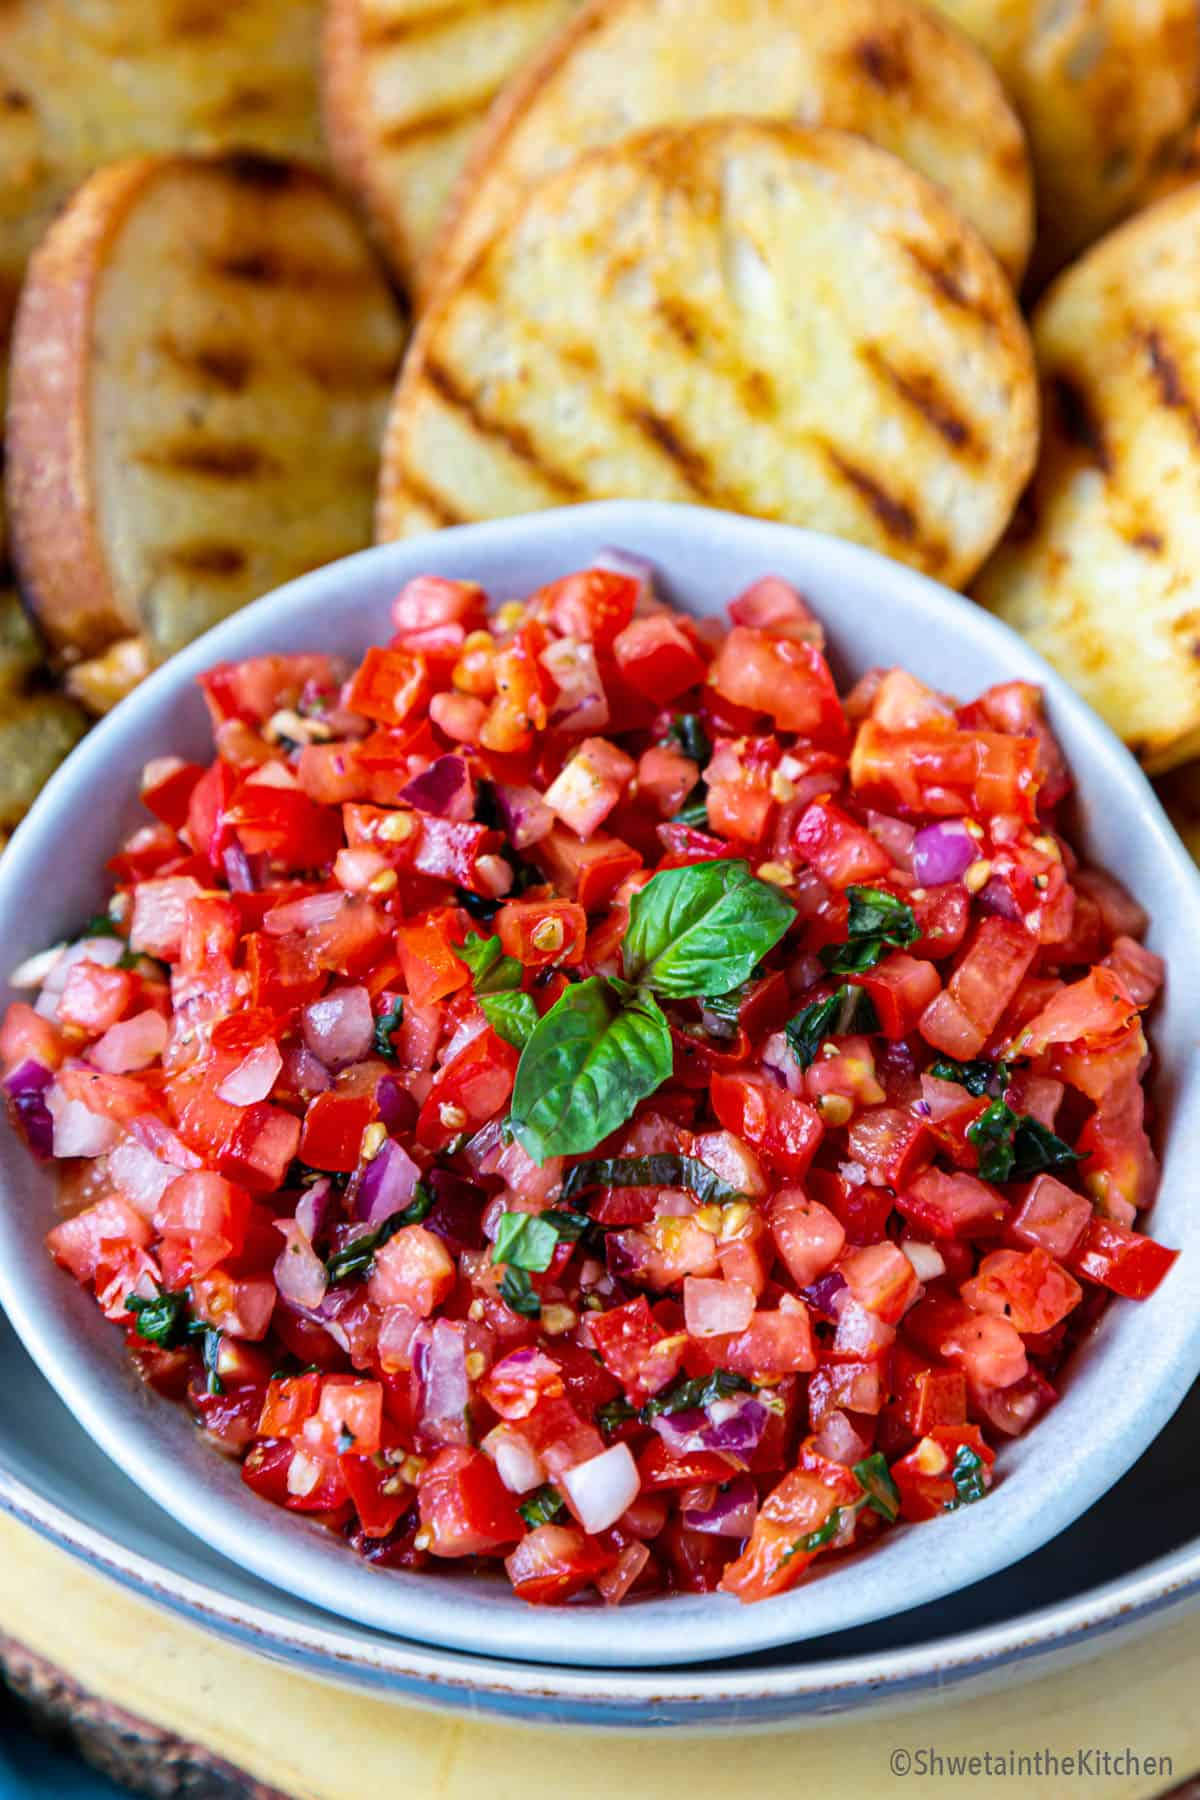 Bowl of tomato bruschetta mixture with grilled bread on side